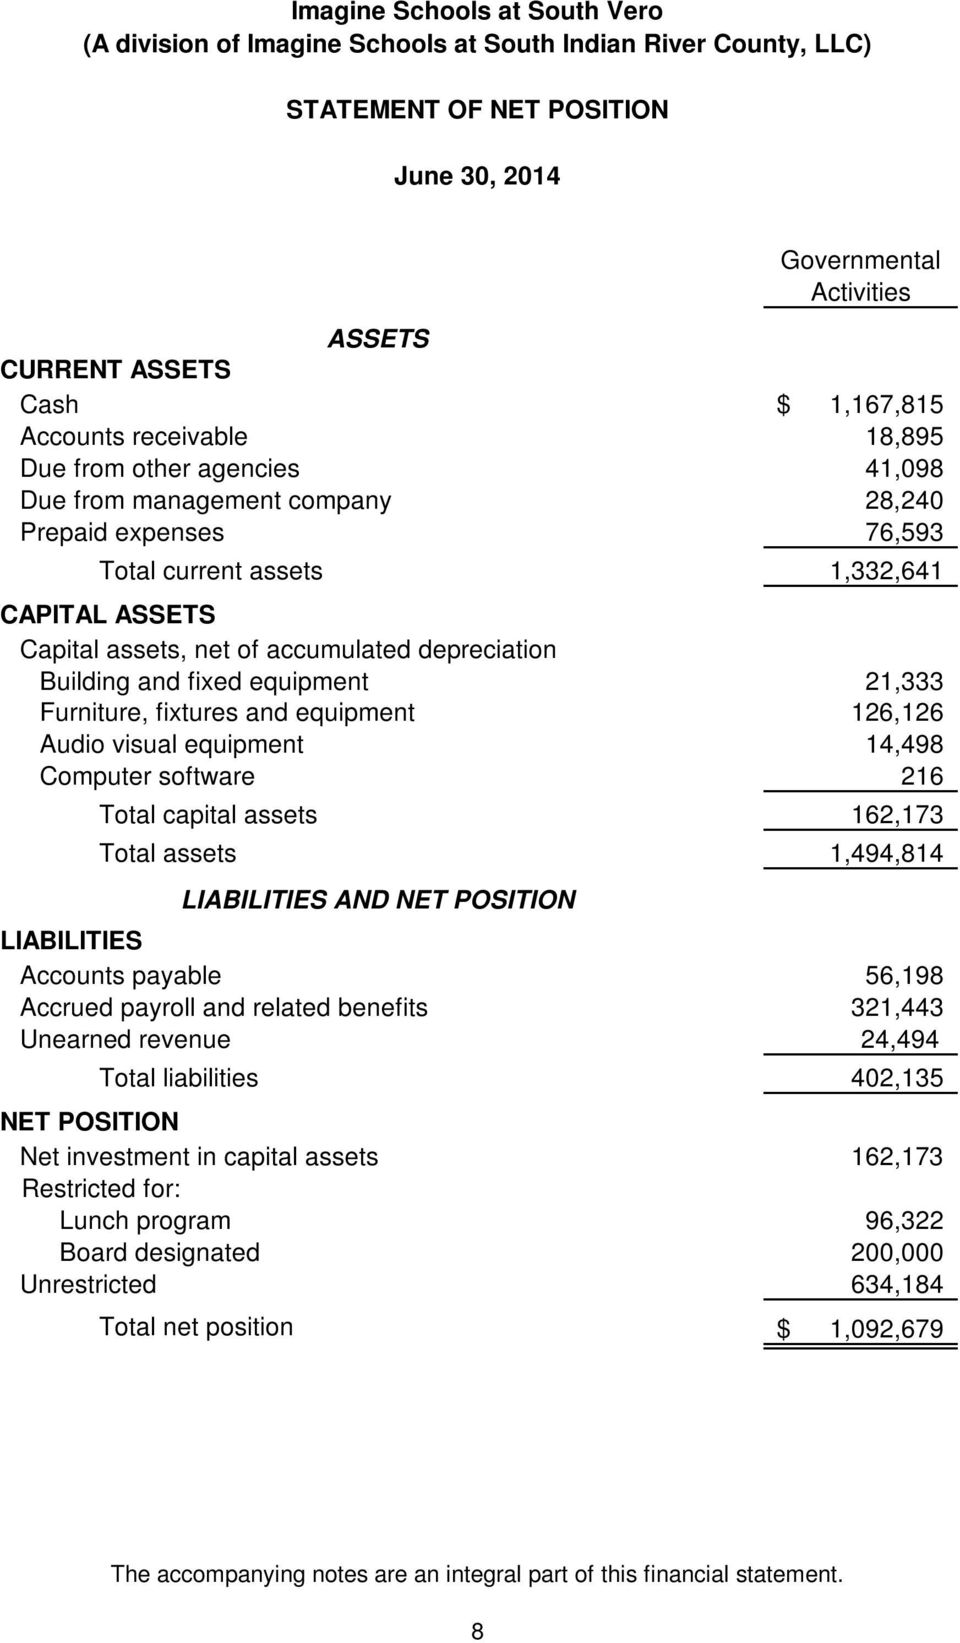 equipment 21,333 Furniture, fixtures and equipment 126,126 Audio visual equipment 14,498 Computer software 216 Total capital assets 162,173 Total assets 1,494,814 LIABILITIES AND NET POSITION